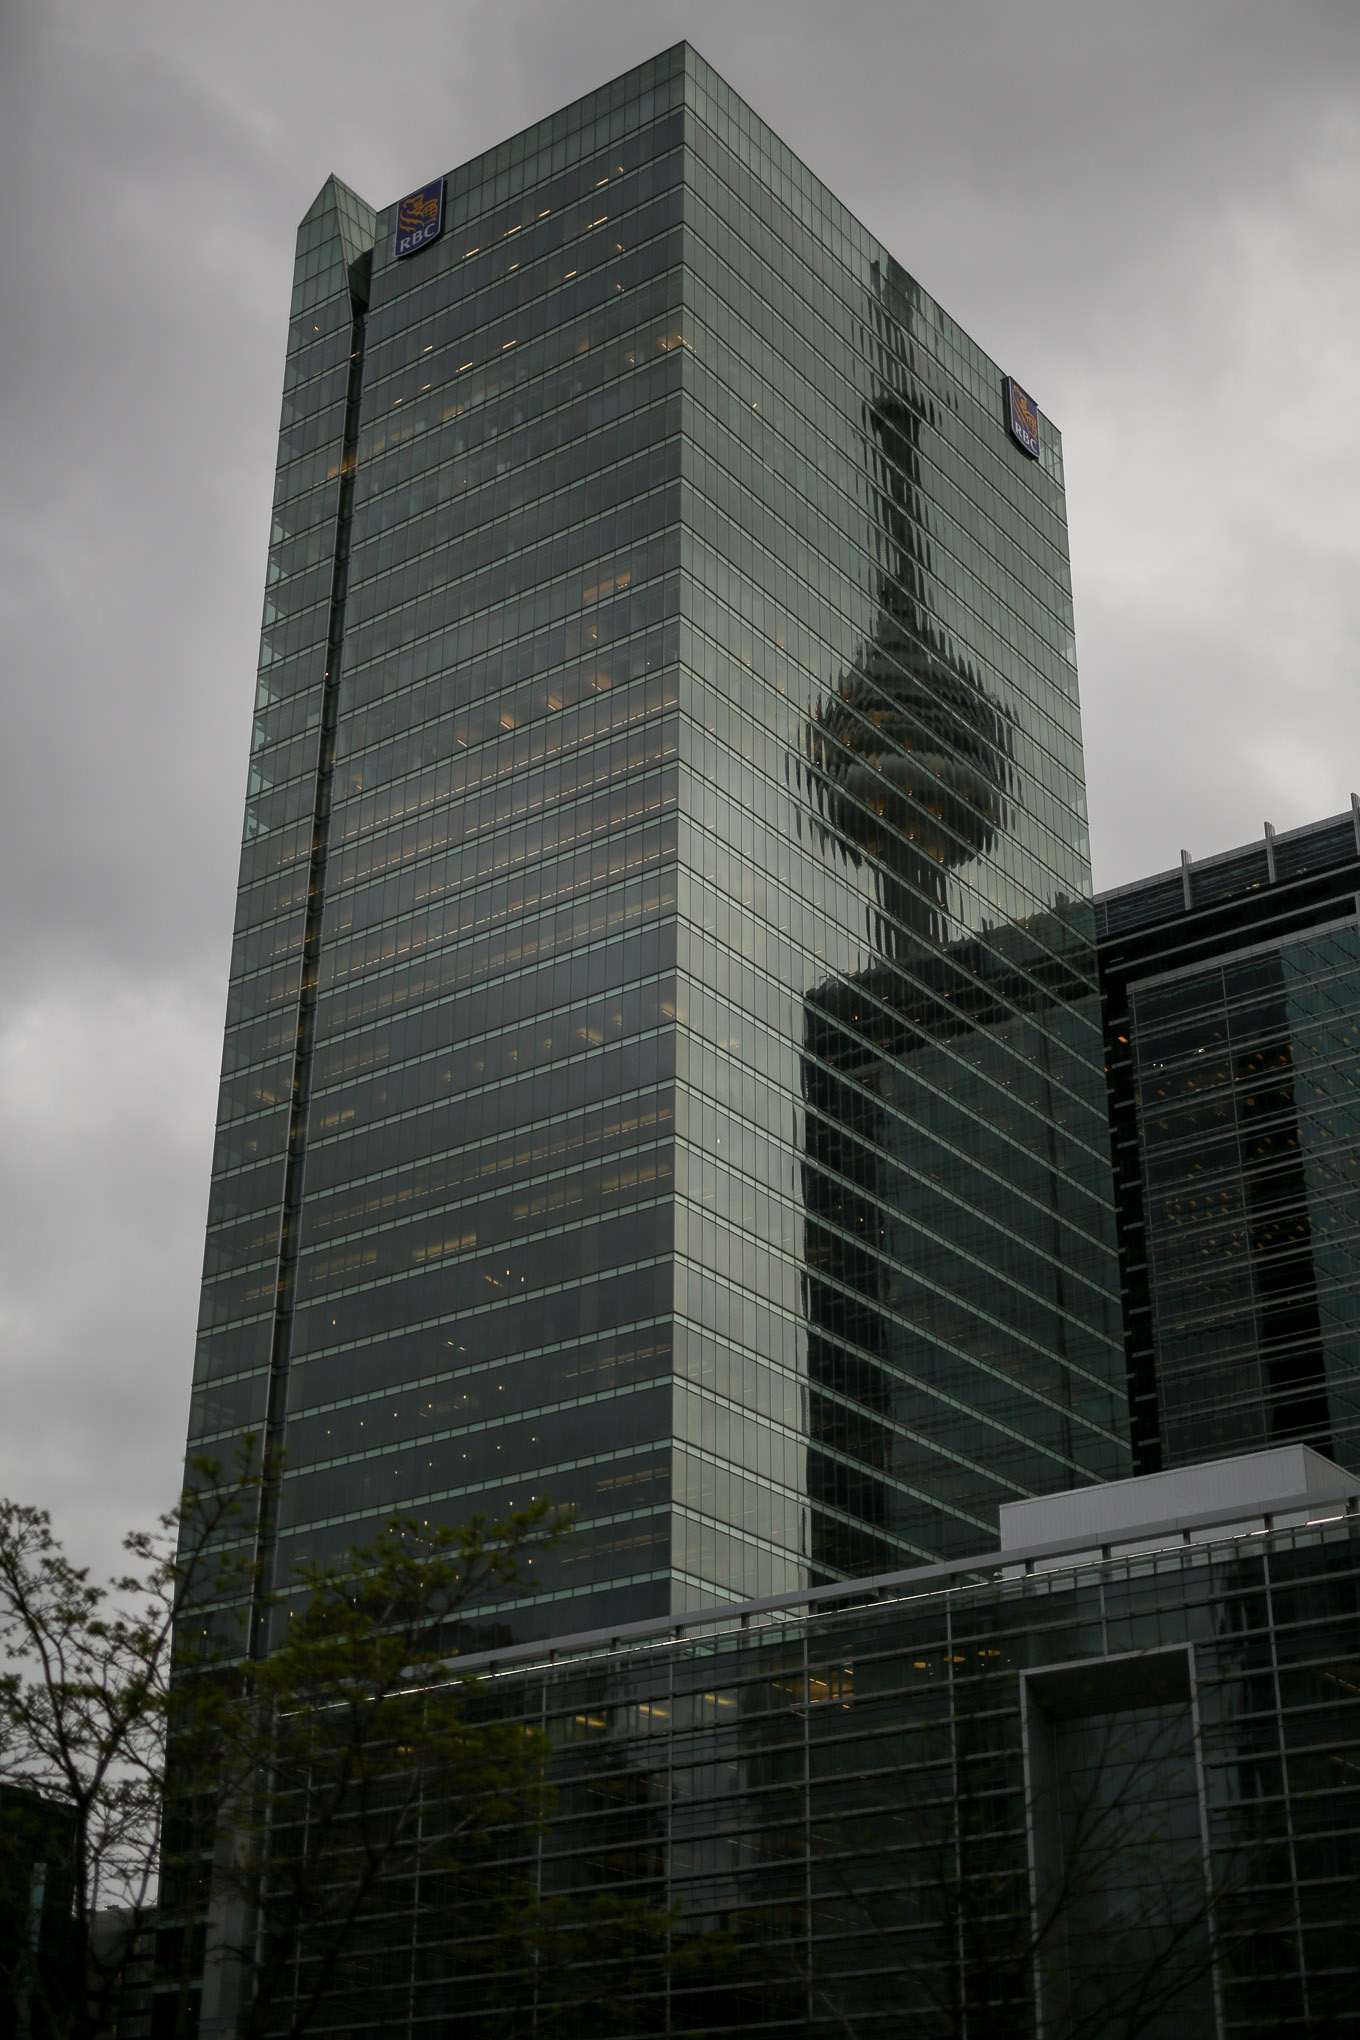 The reflection of CN tower on the Royal Bank of Canada building in Toronto's Financial District.